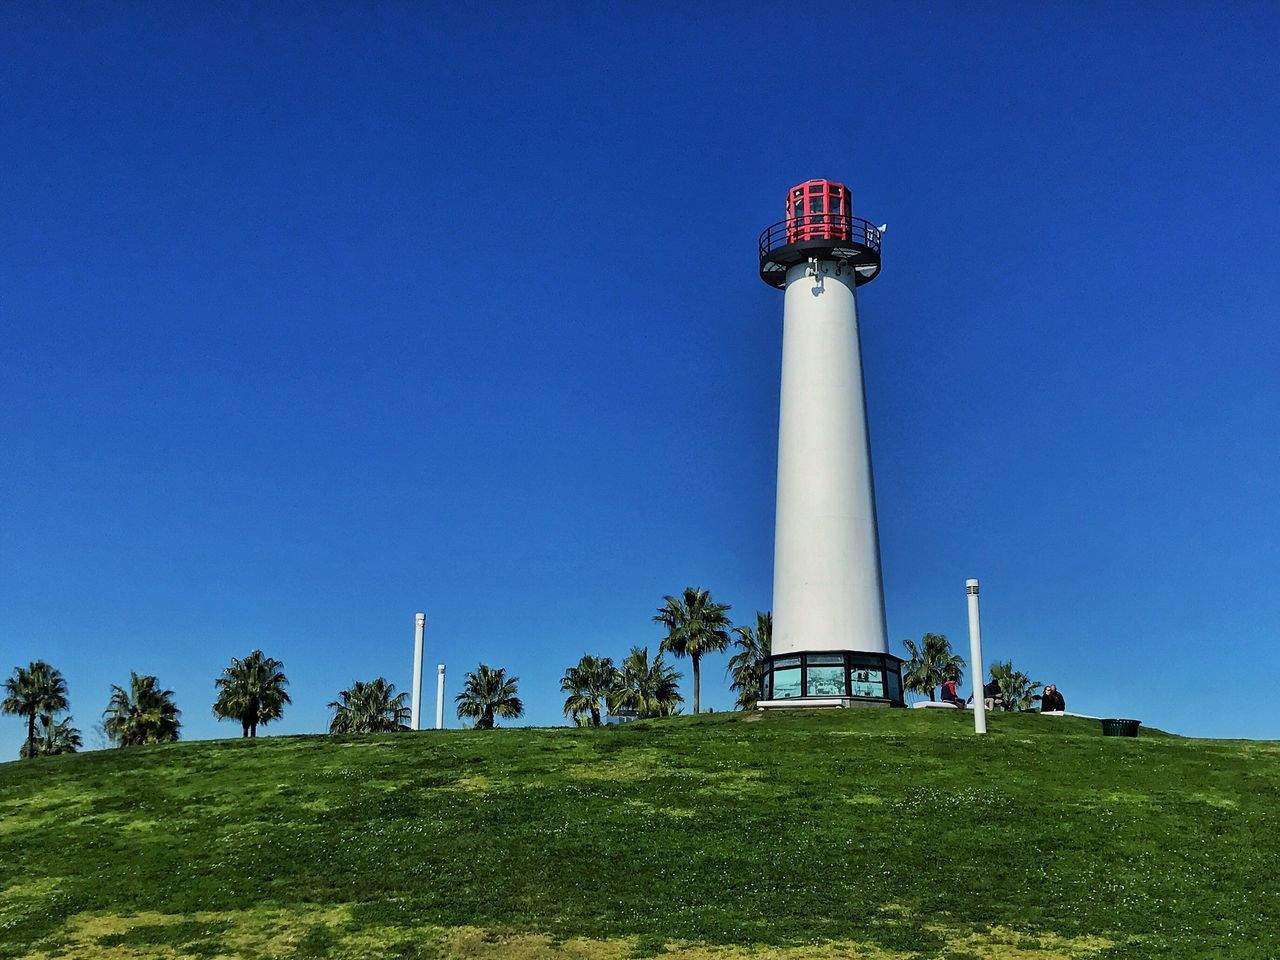 clear sky, architecture, blue, copy space, day, low angle view, built structure, outdoors, lighthouse, no people, grass, tree, nature, sky